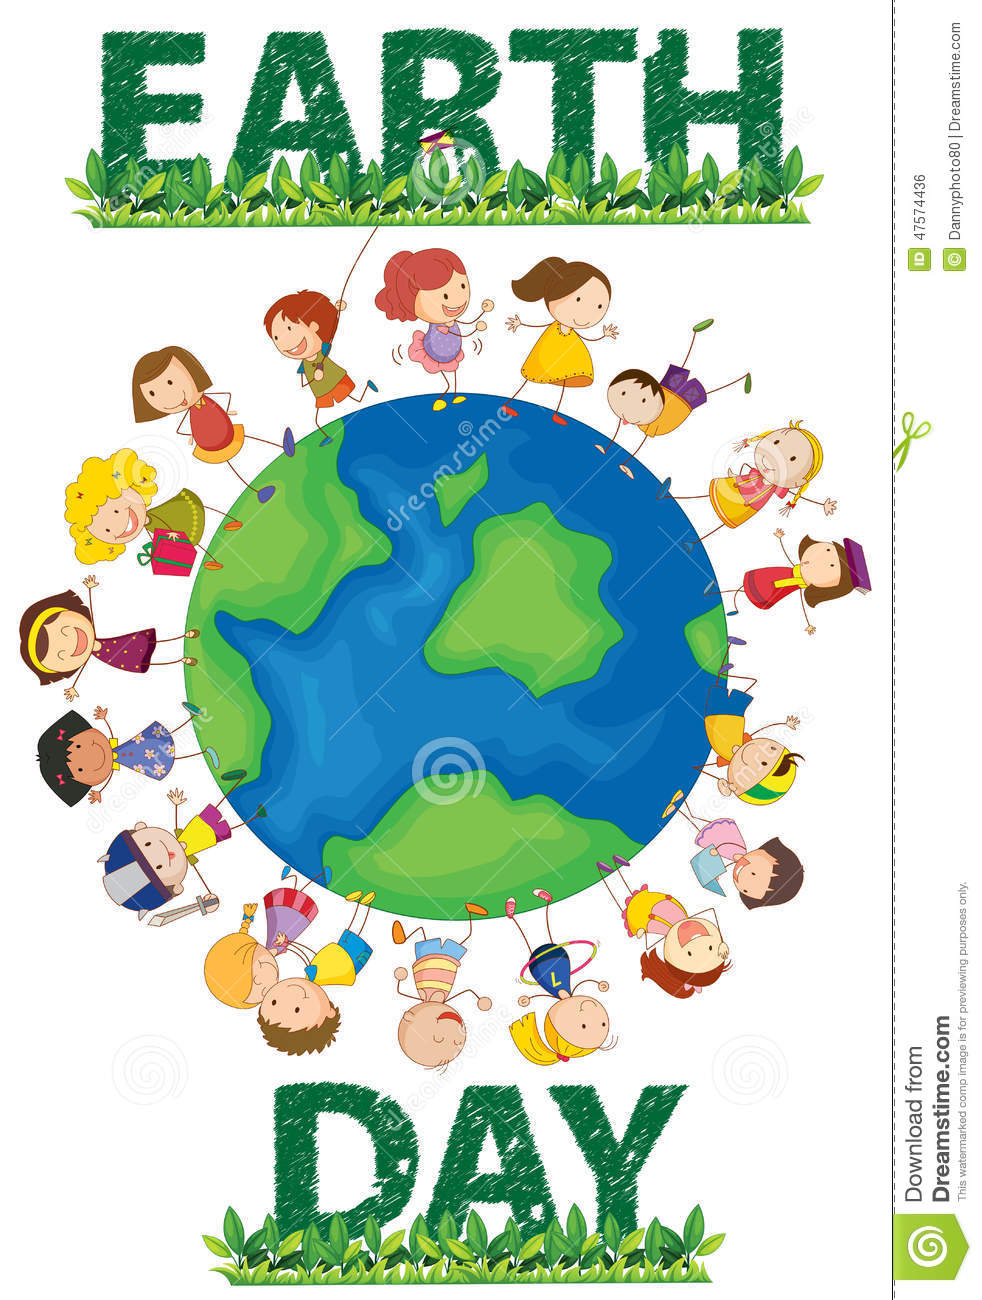 Earth day stock vector. Image of graphic, fresh, planet ...